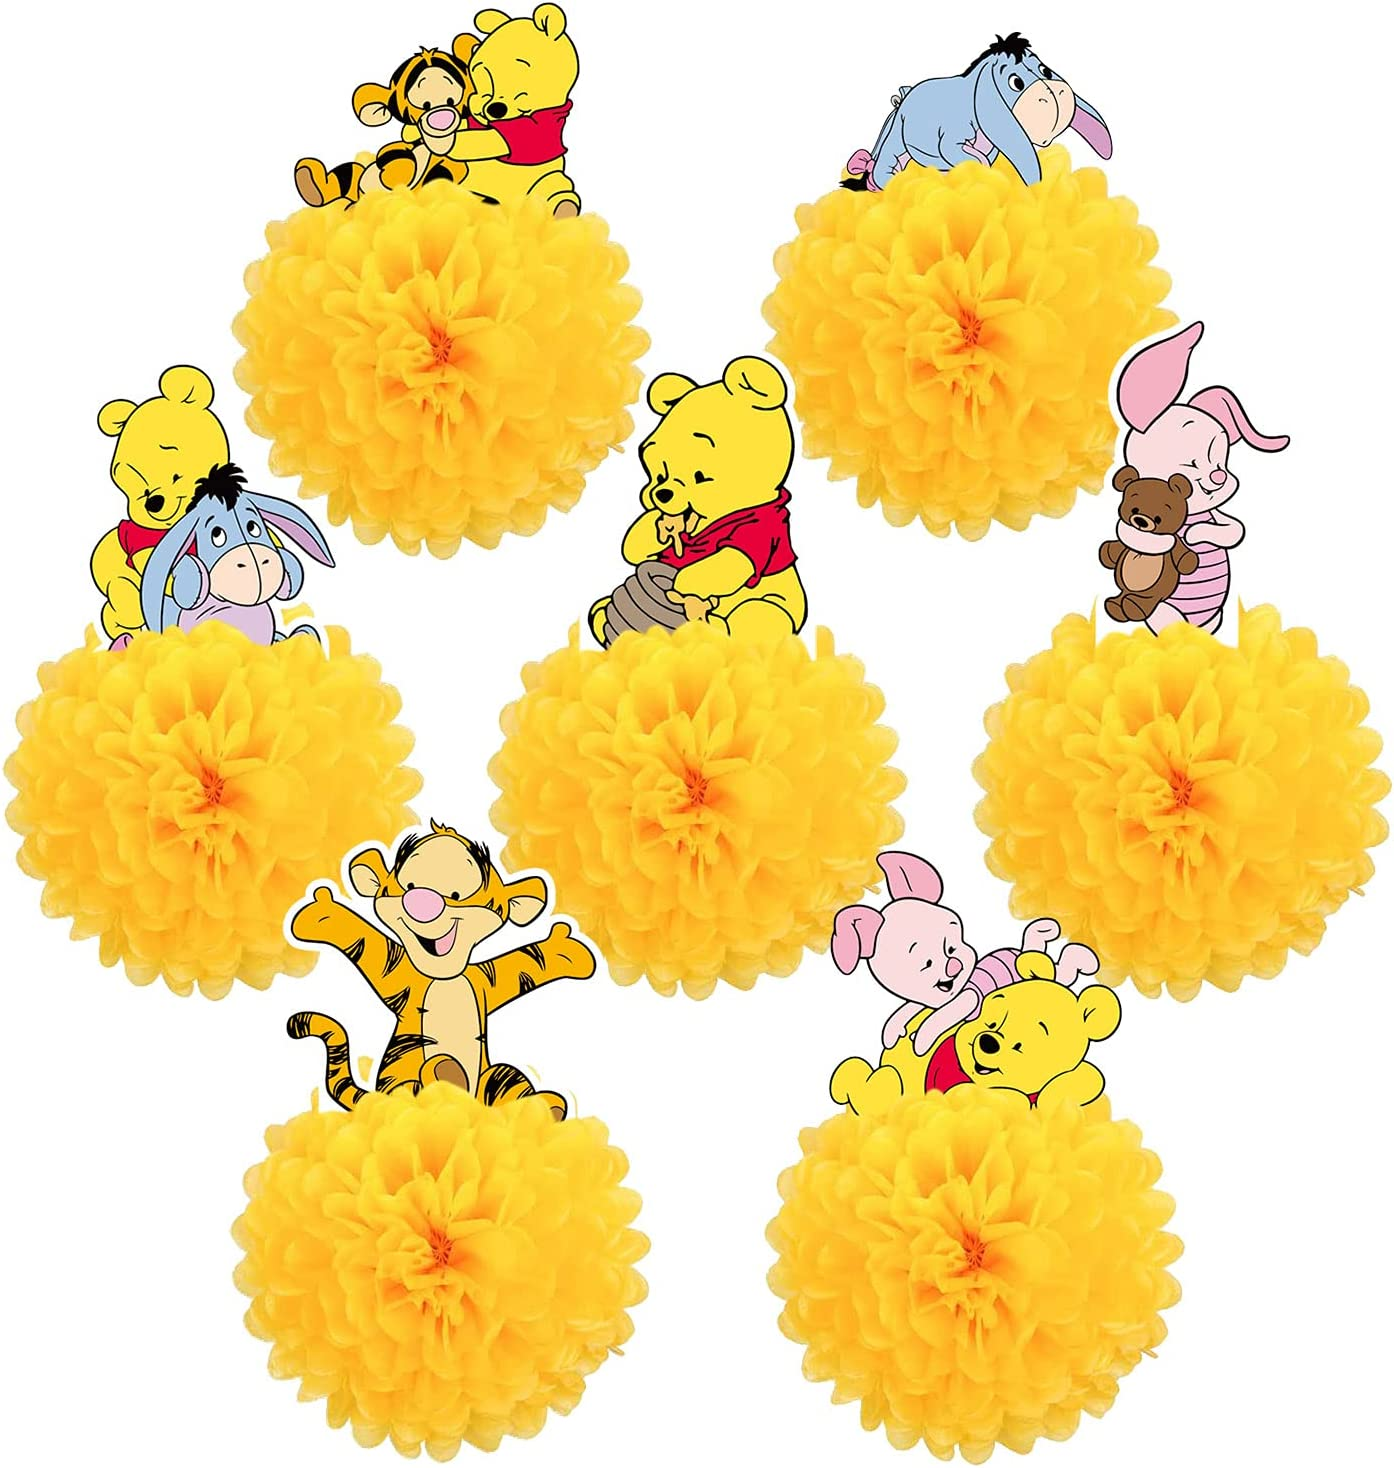 ZEADERS 7Pcs Winnie The Pooh Honeycomb Centerpieces 3D Table Decorations,Bear Table Decor Birthday Party Supplies, Paper Pom Poms Flower